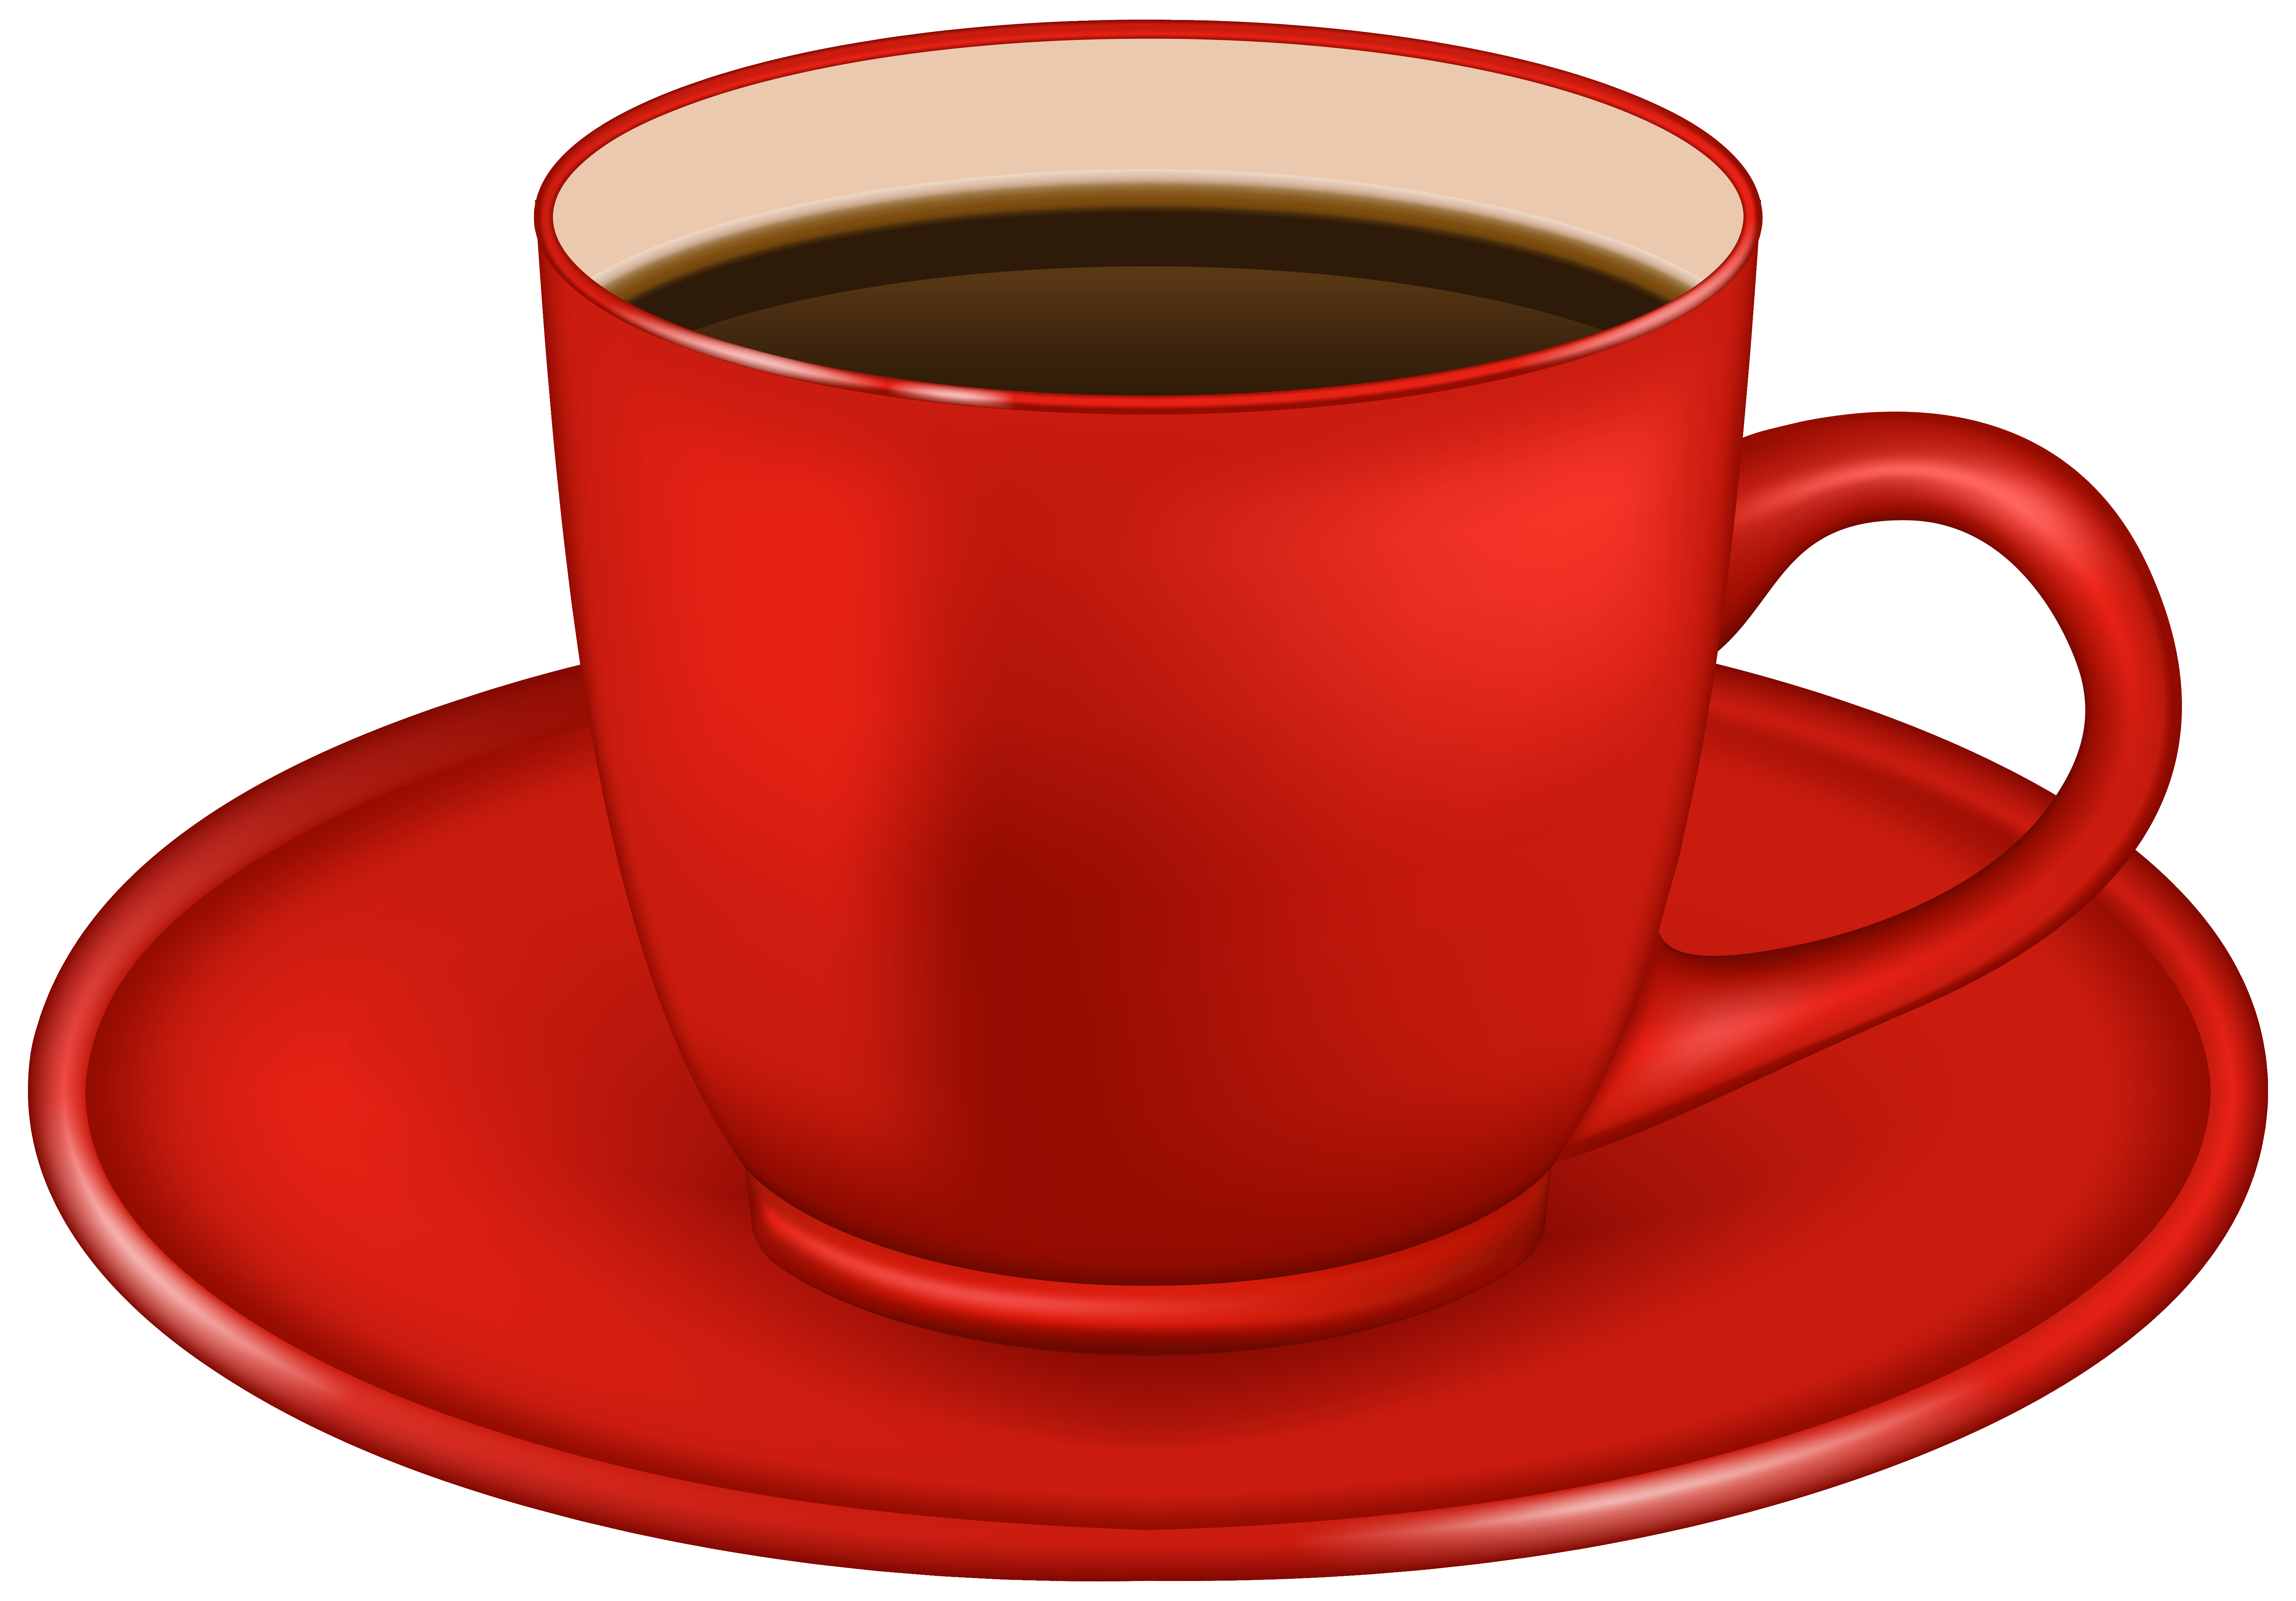 Single-Origin Cup Tea Espresso Coffee Cafe Red PNG Image